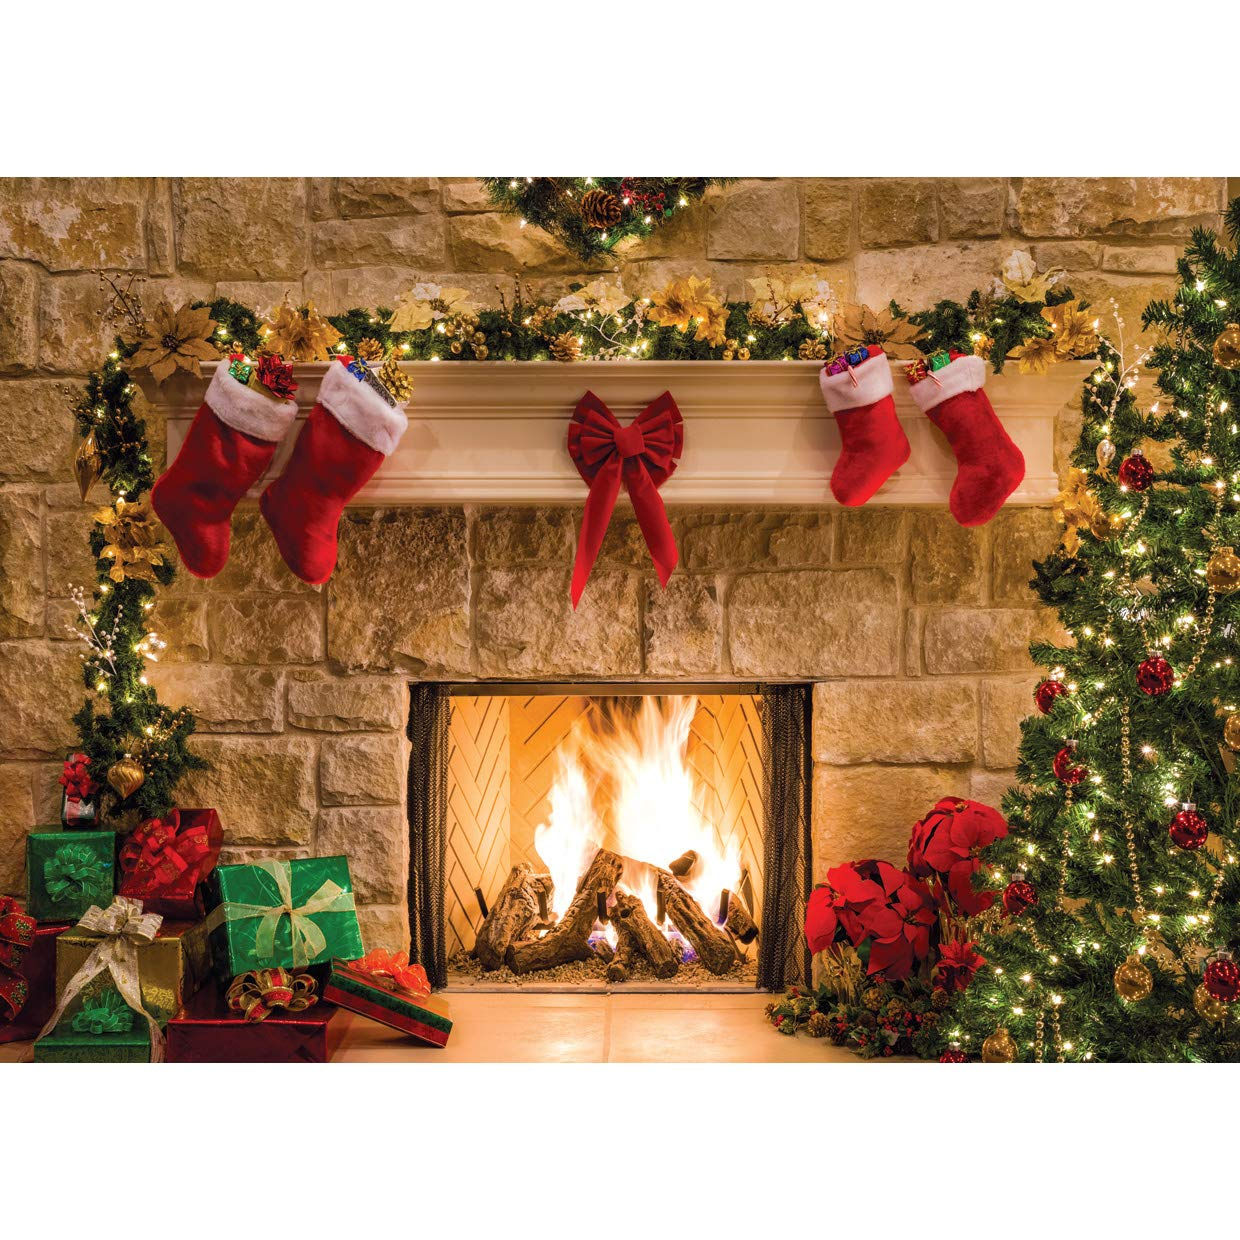 Christmas Fireplace.Sjoloon 7x5ft Christmas Photography Backdrops Child Christmas Fireplace Decoration Background For Photo Studio 11209